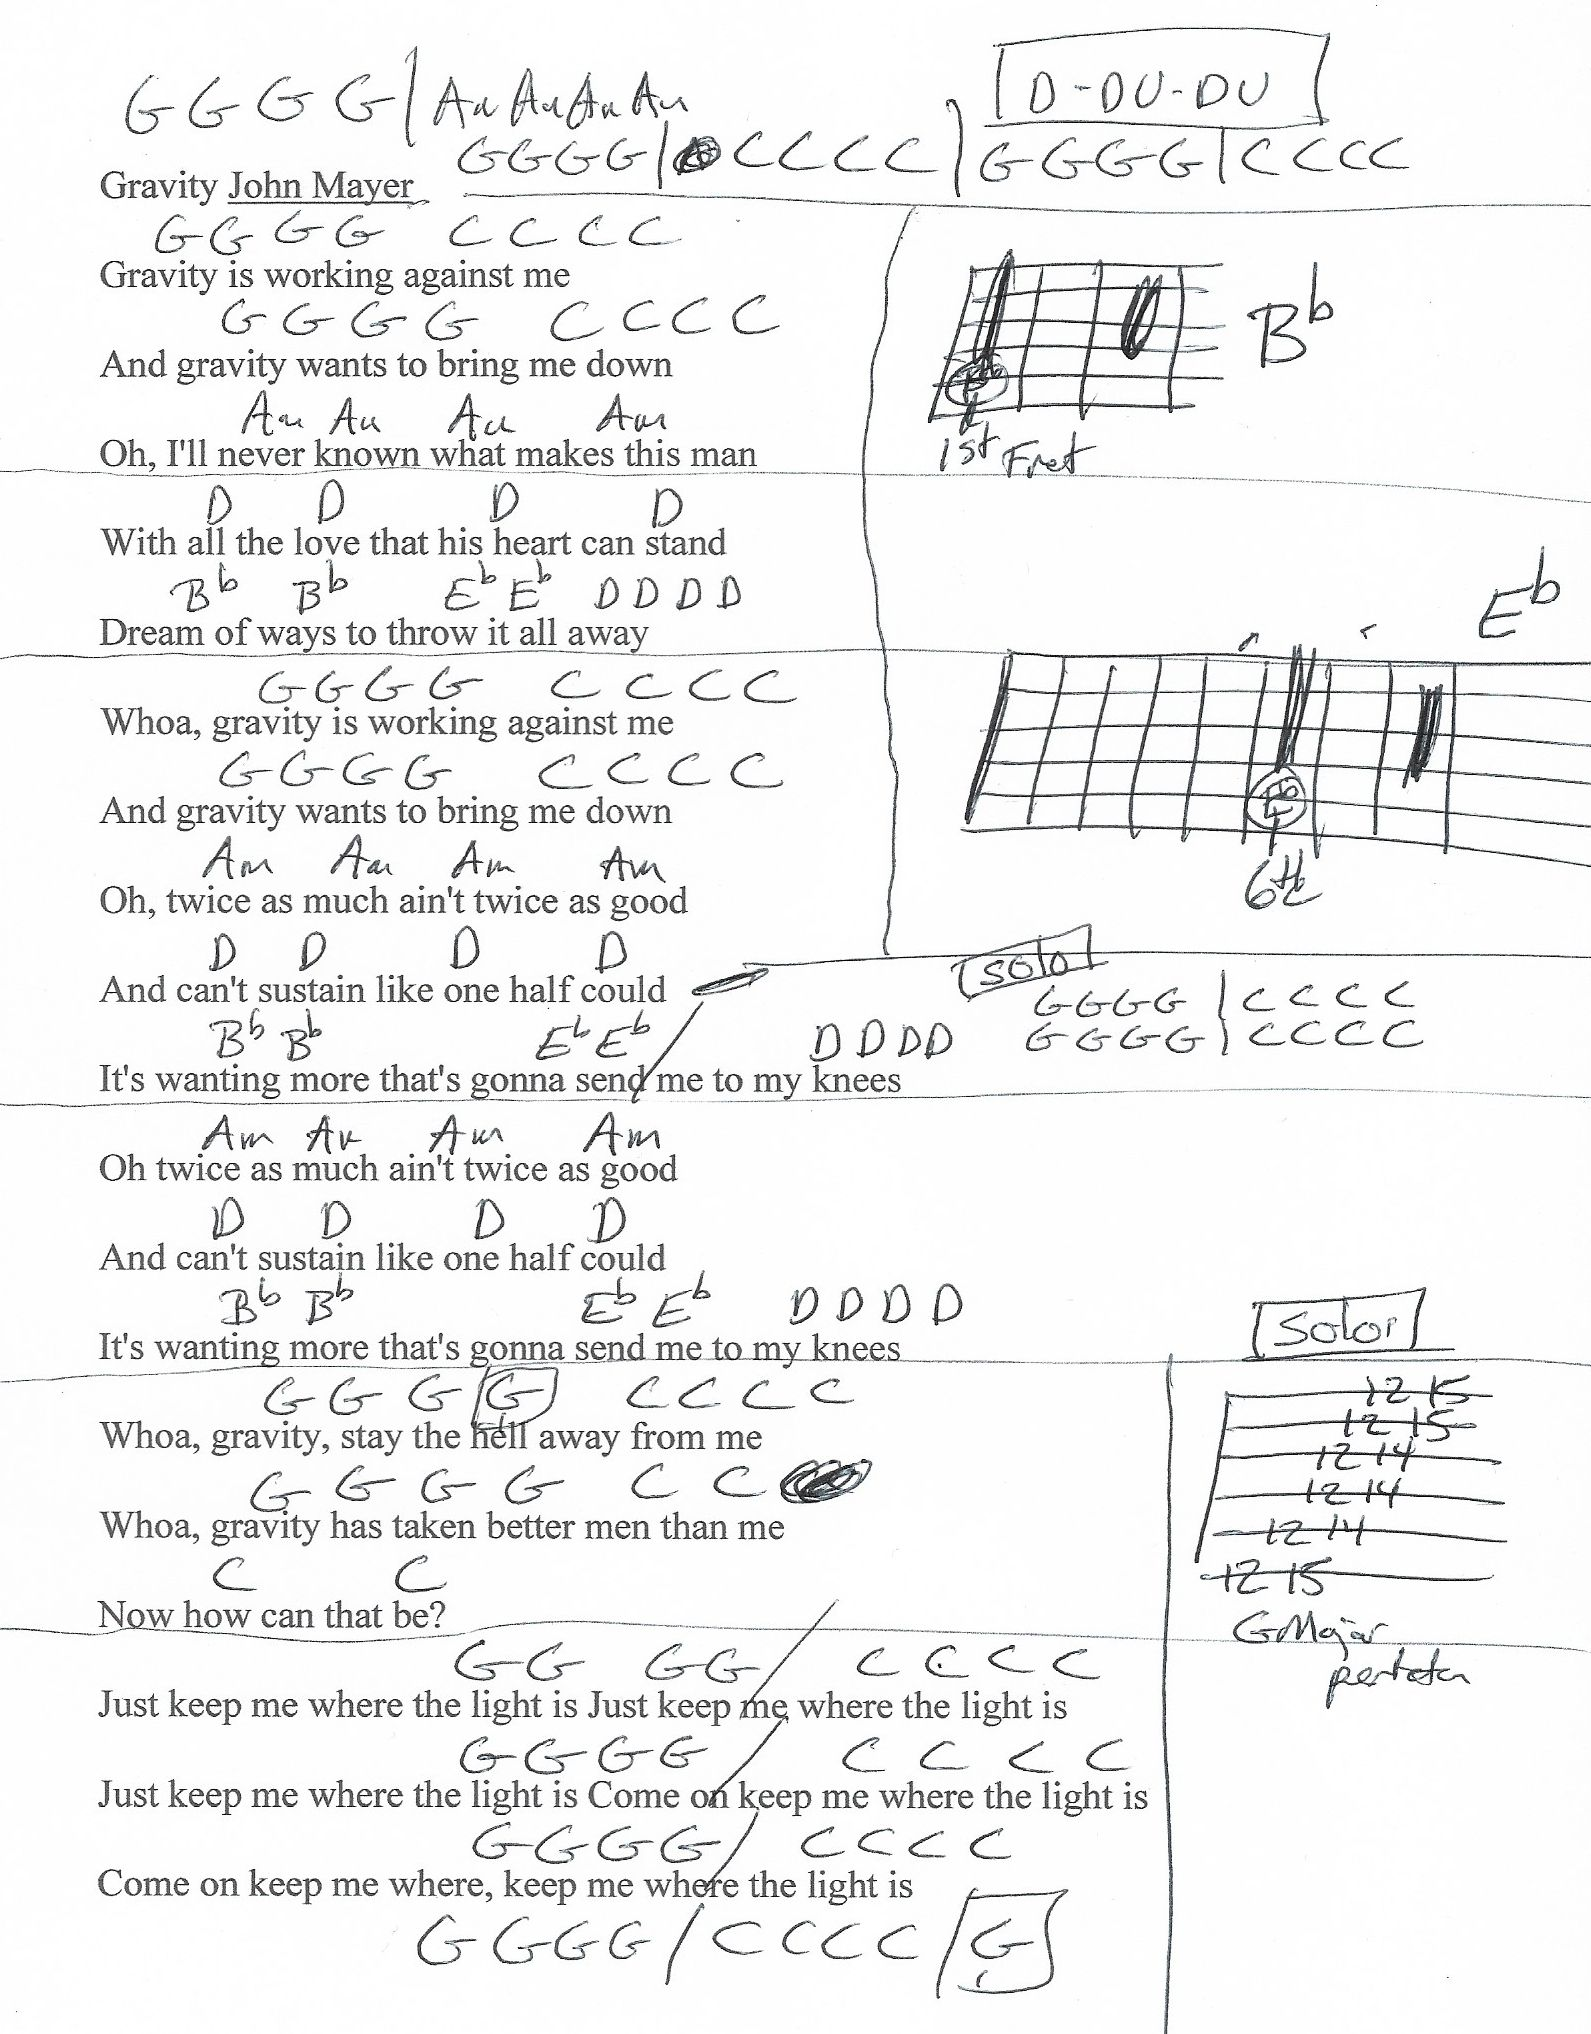 Pin On 2019 Guitar Chord Charts C minorcm g minorgm she's always gone too long any time she goes away. pinterest